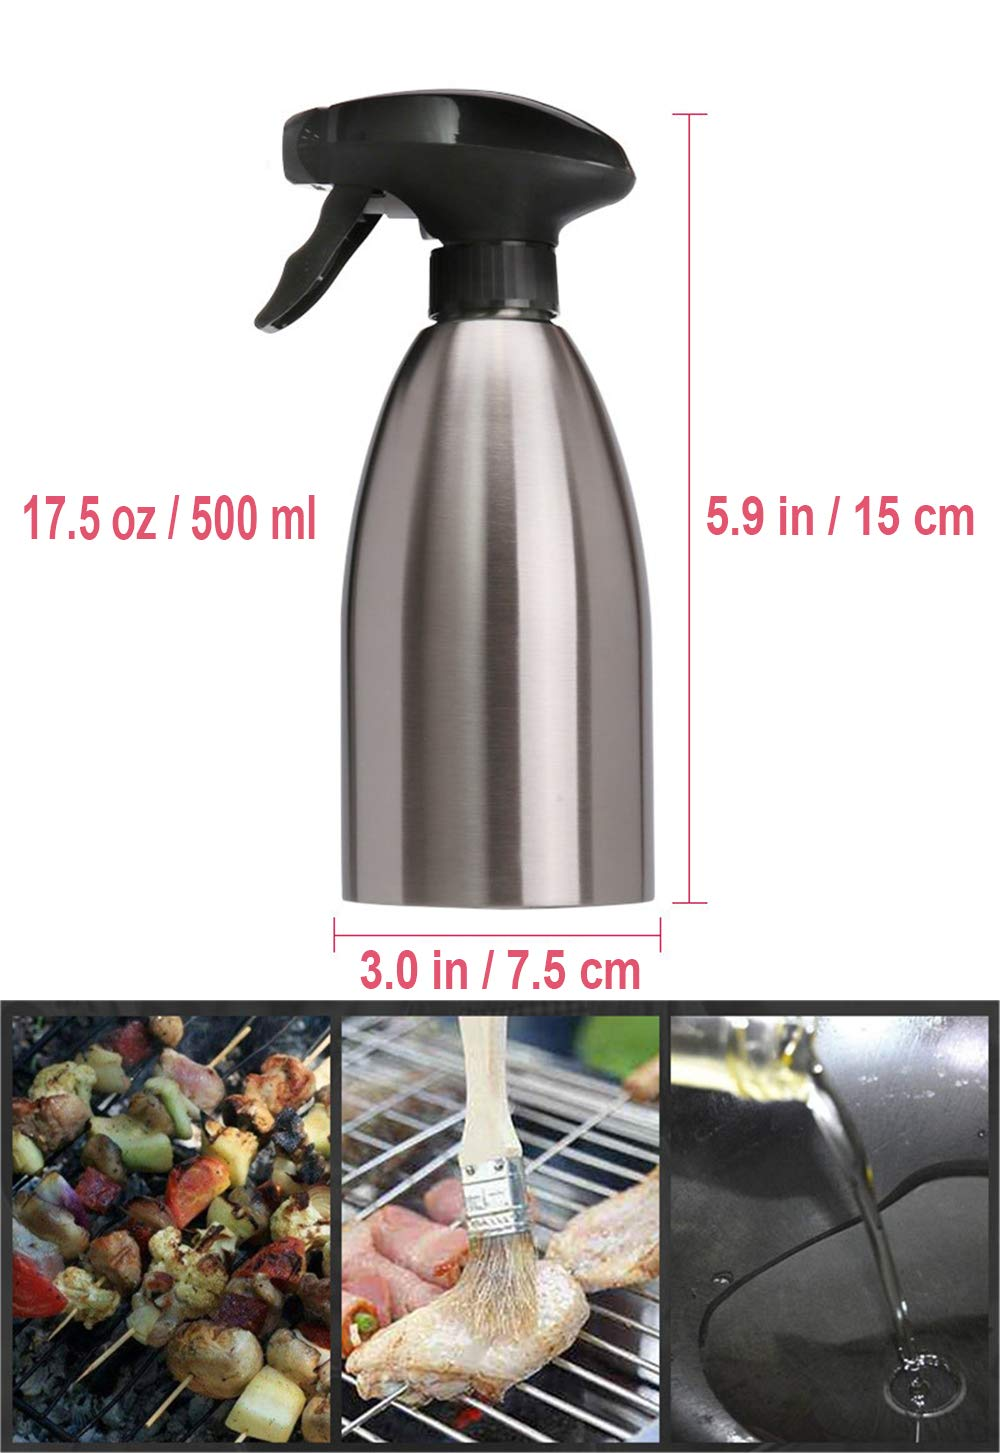 Olive Oil Sprayer Vinegar Sprayer Dispenser/ Stainless Steel Bottle Container 500 ml // 17.5 oz Ideal Portable Kitchenware Tools for Outdoor BBQ//Travel Cooking//Daily Kitchen Using